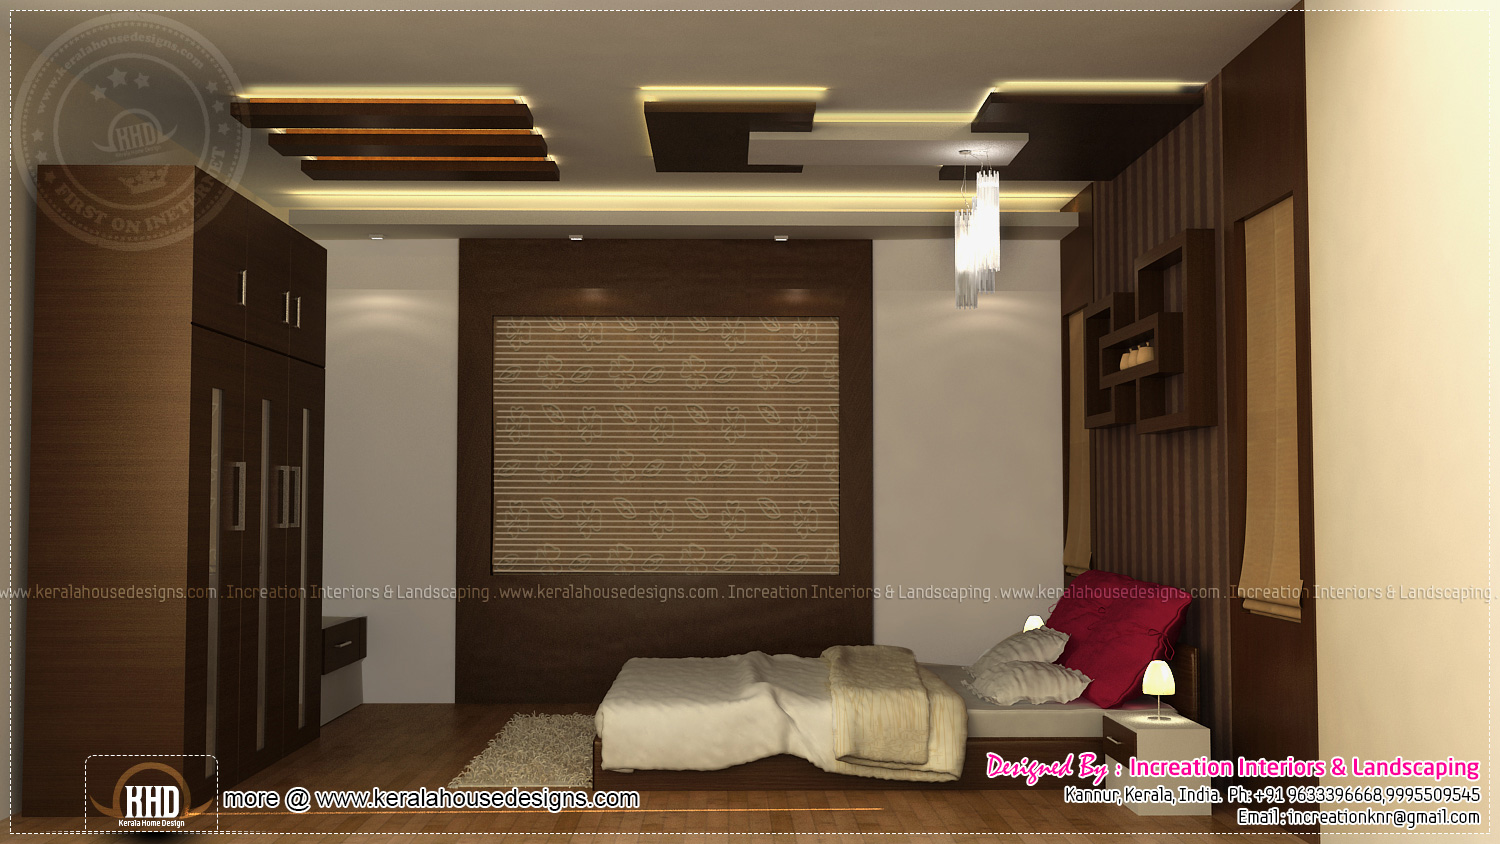 Interior designs by increation kannur kerala kerala for House interior design kerala photos